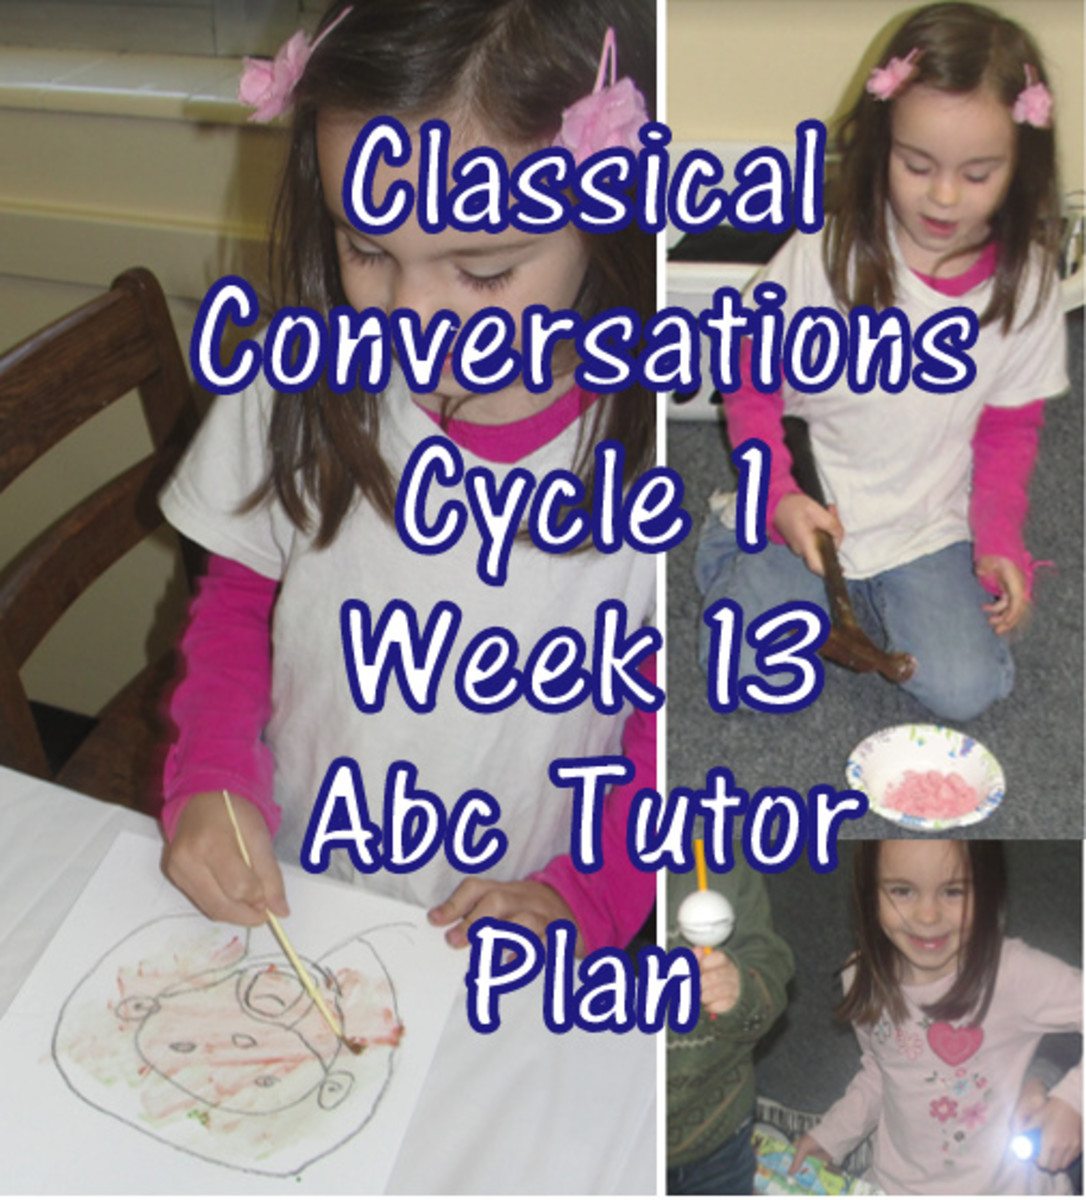 Classical Conversations Cycle 1 Week 13 Abc Tutor Plan